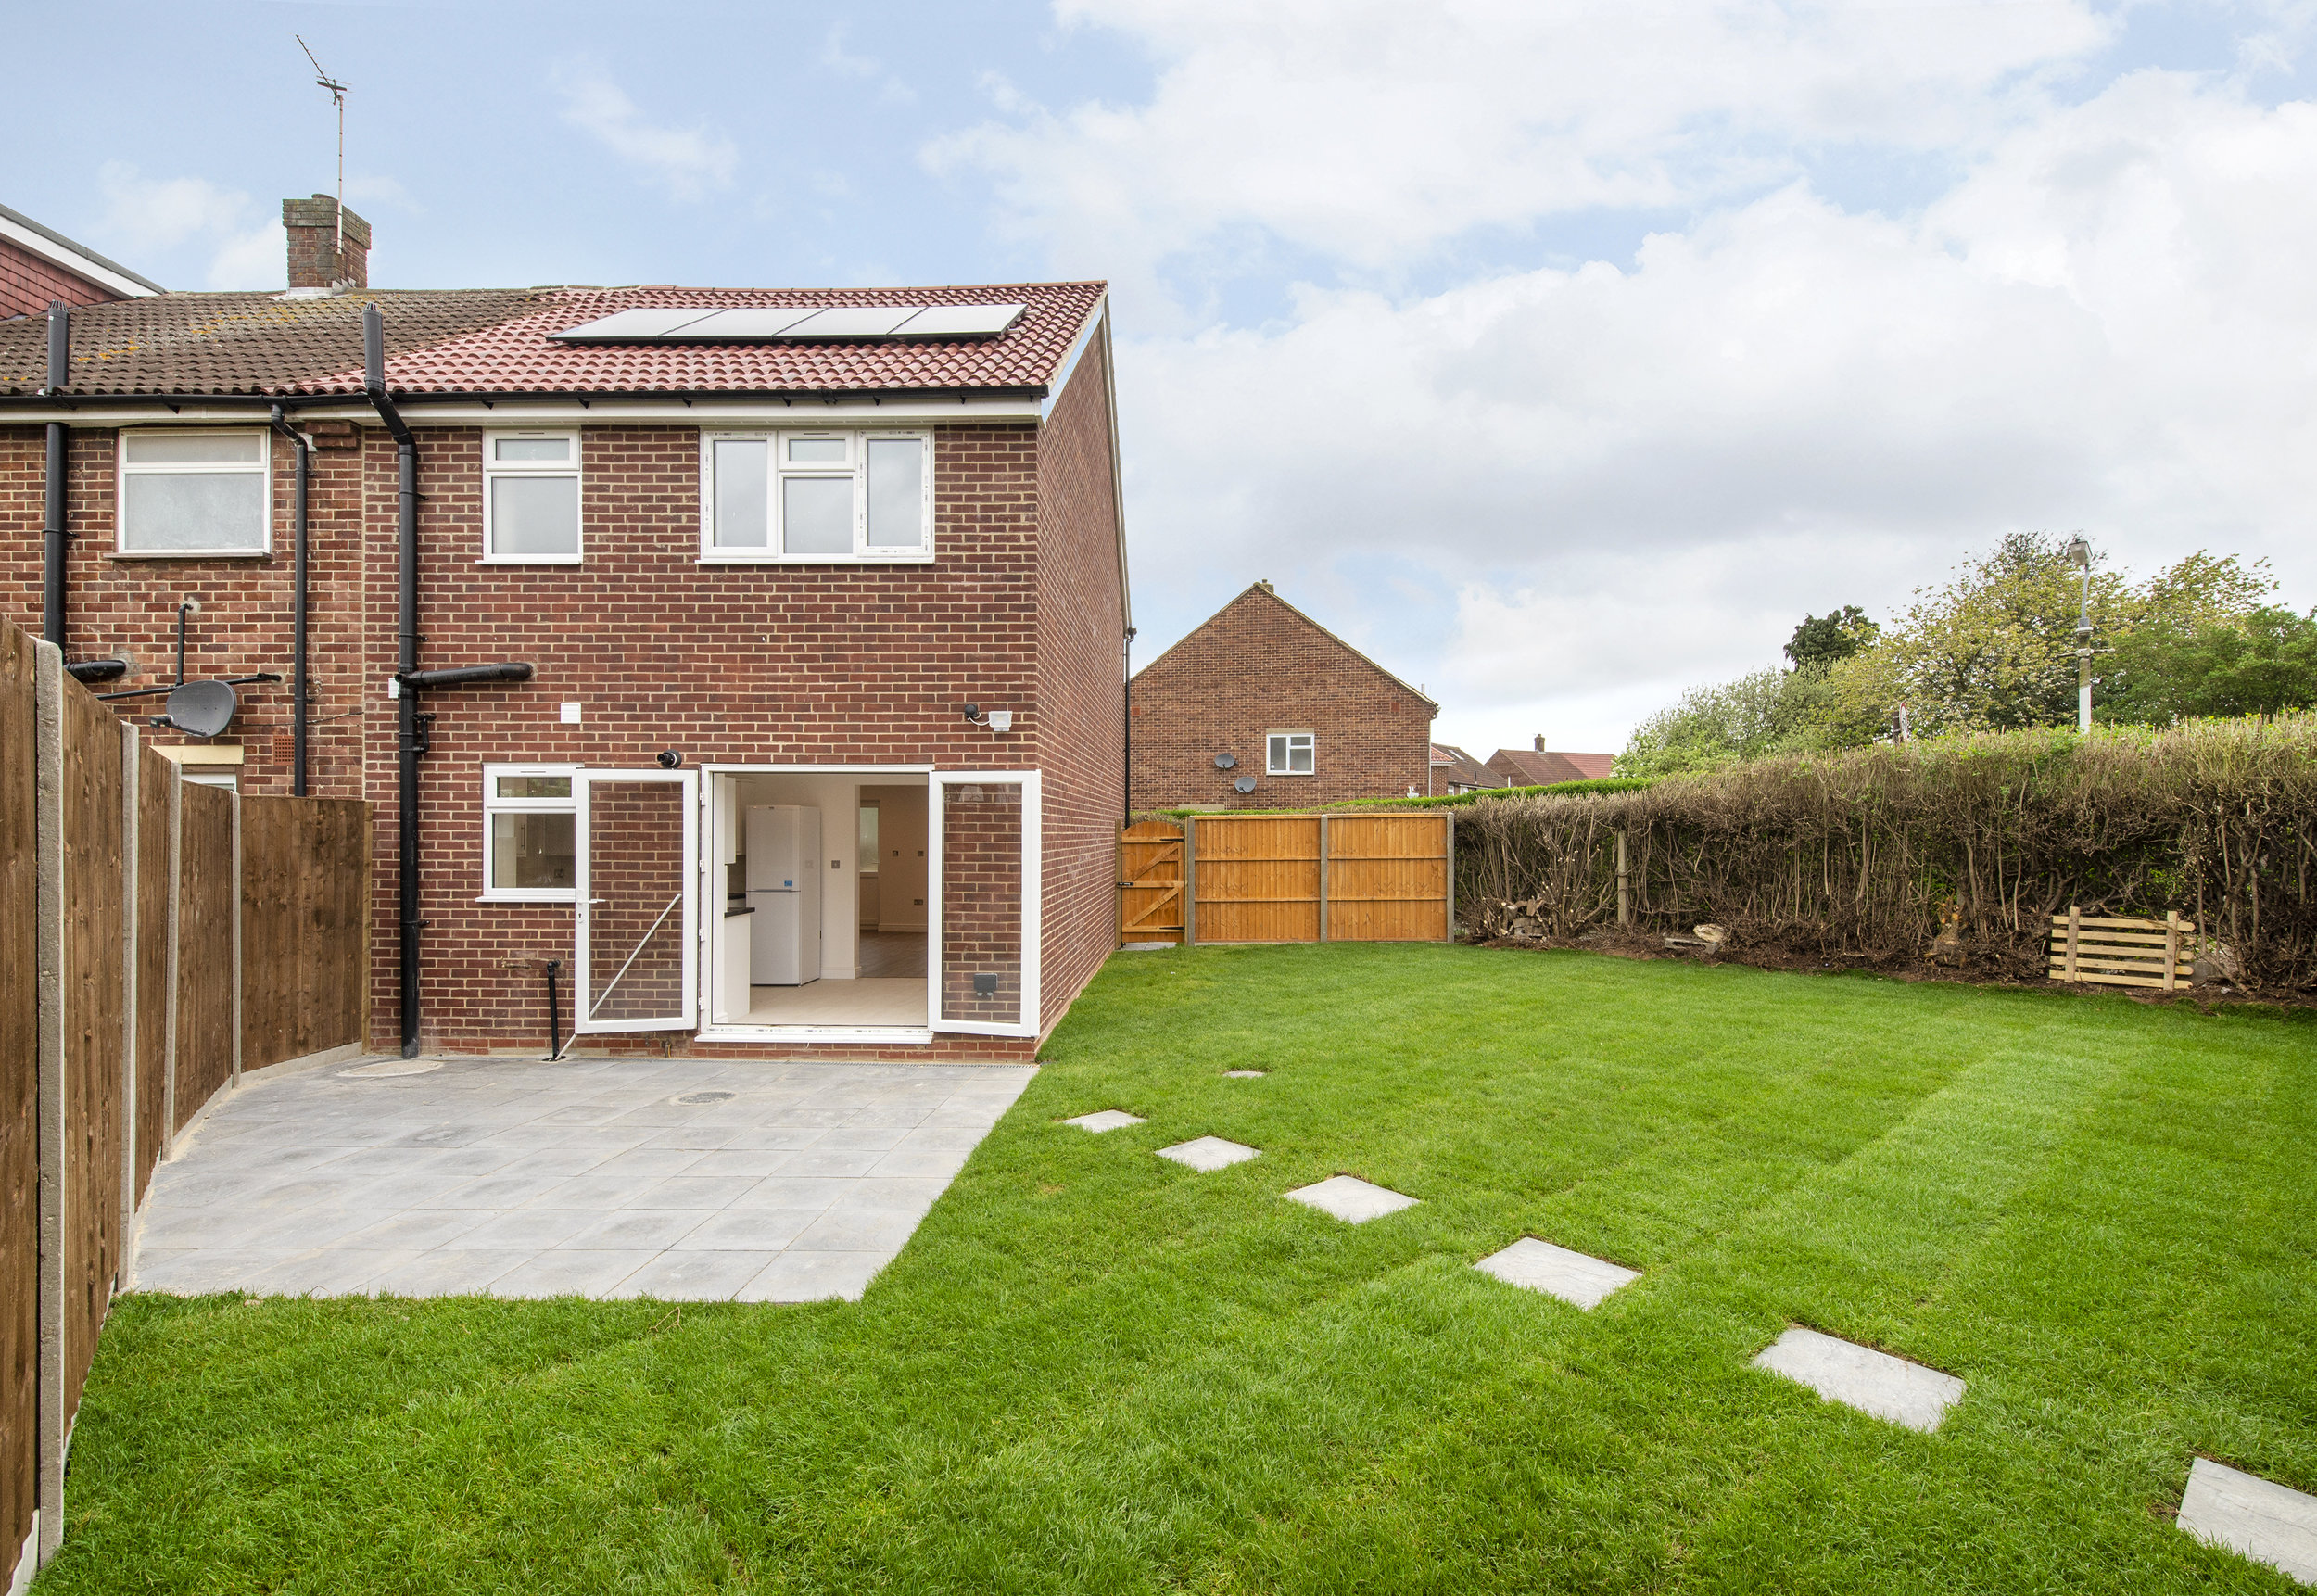 - PROJECT OUTLINE- New build 3 bedroom end of terrace house- 1x bathroom and downstairs WC- Landscaped front and back gardens- Solar panelsPROJECT VALUE- £150,000